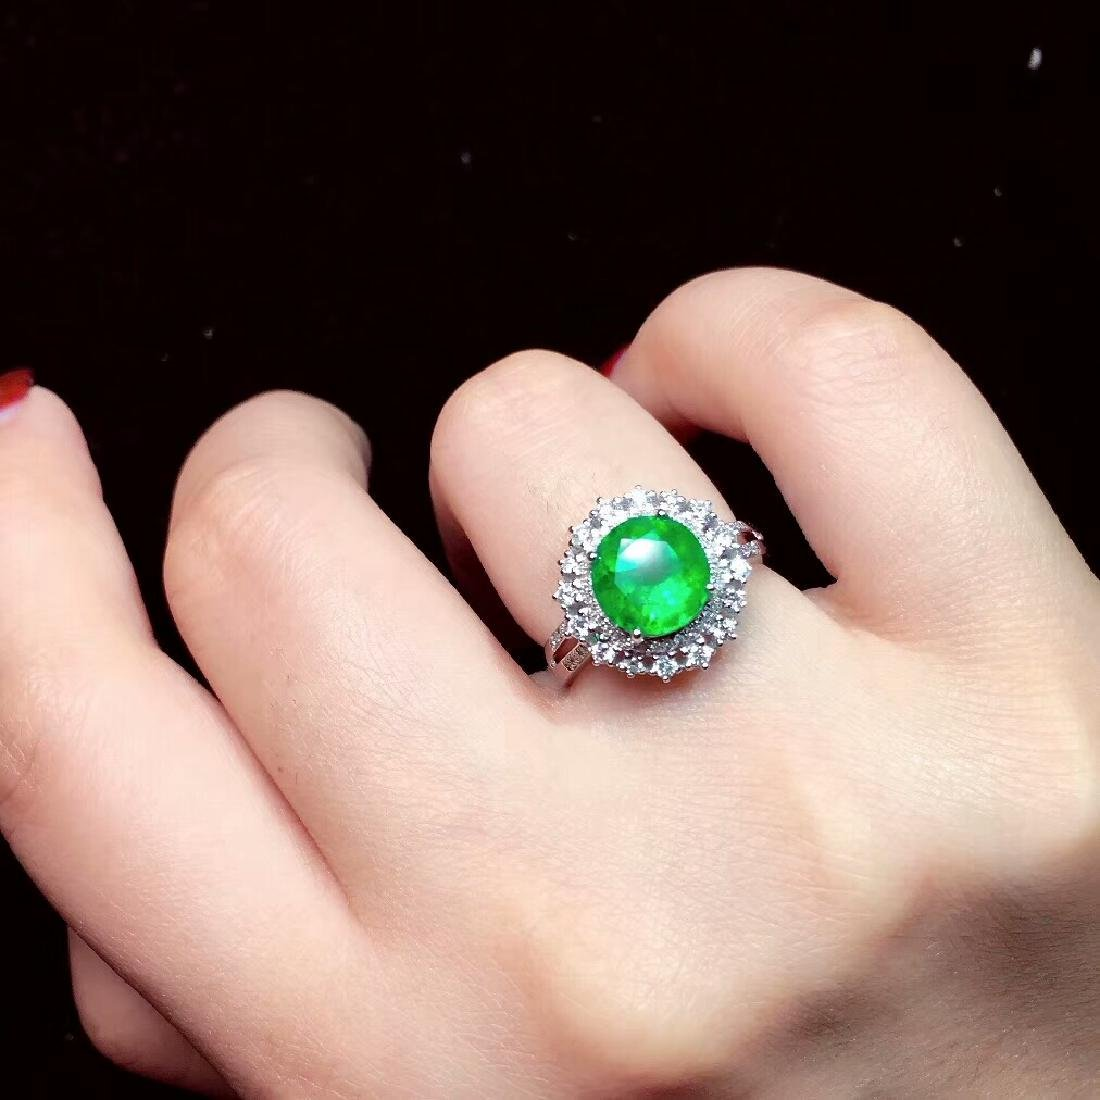 2.27ct Emerald Ring in 18kt white Gold - 5